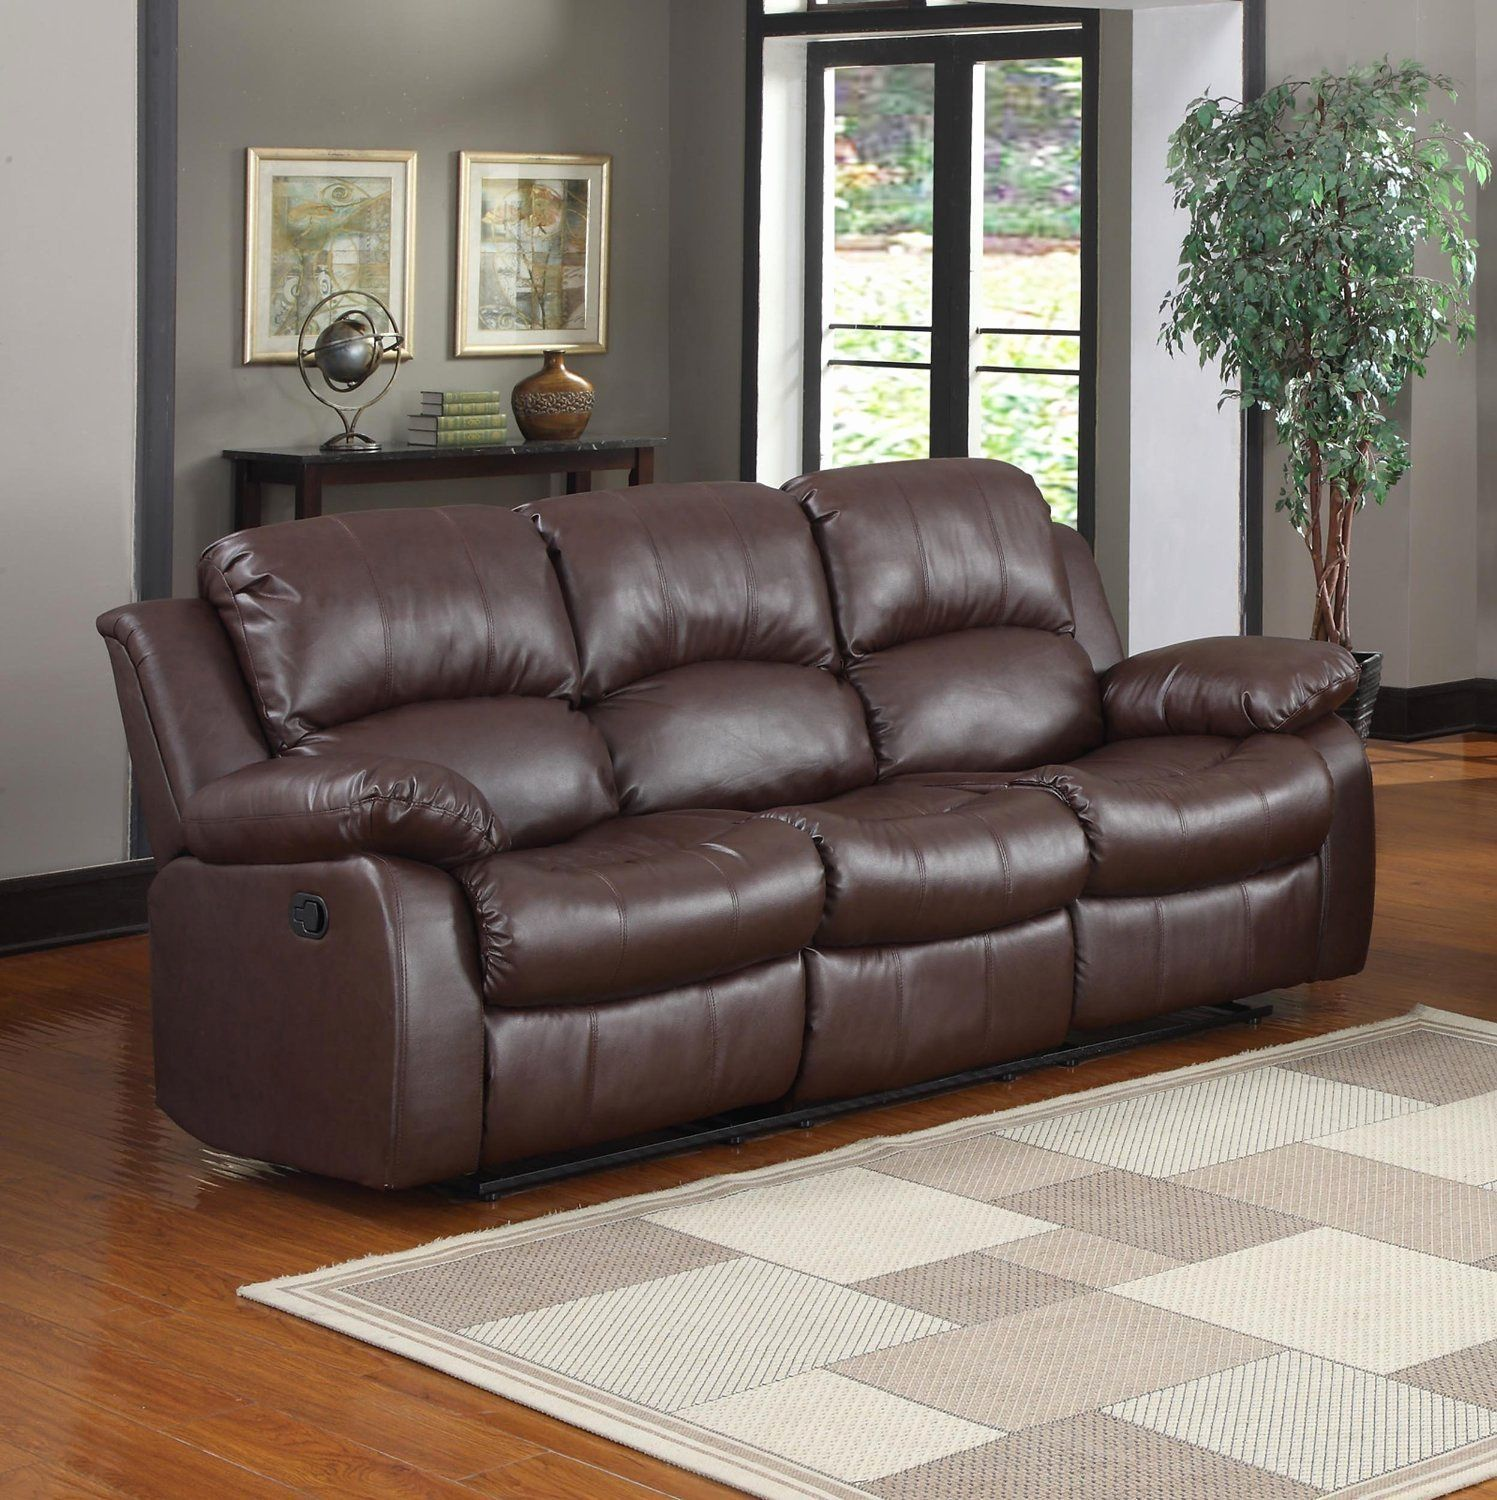 lovely leather recliner sofas images leather recliner sofas rh pinterest co uk